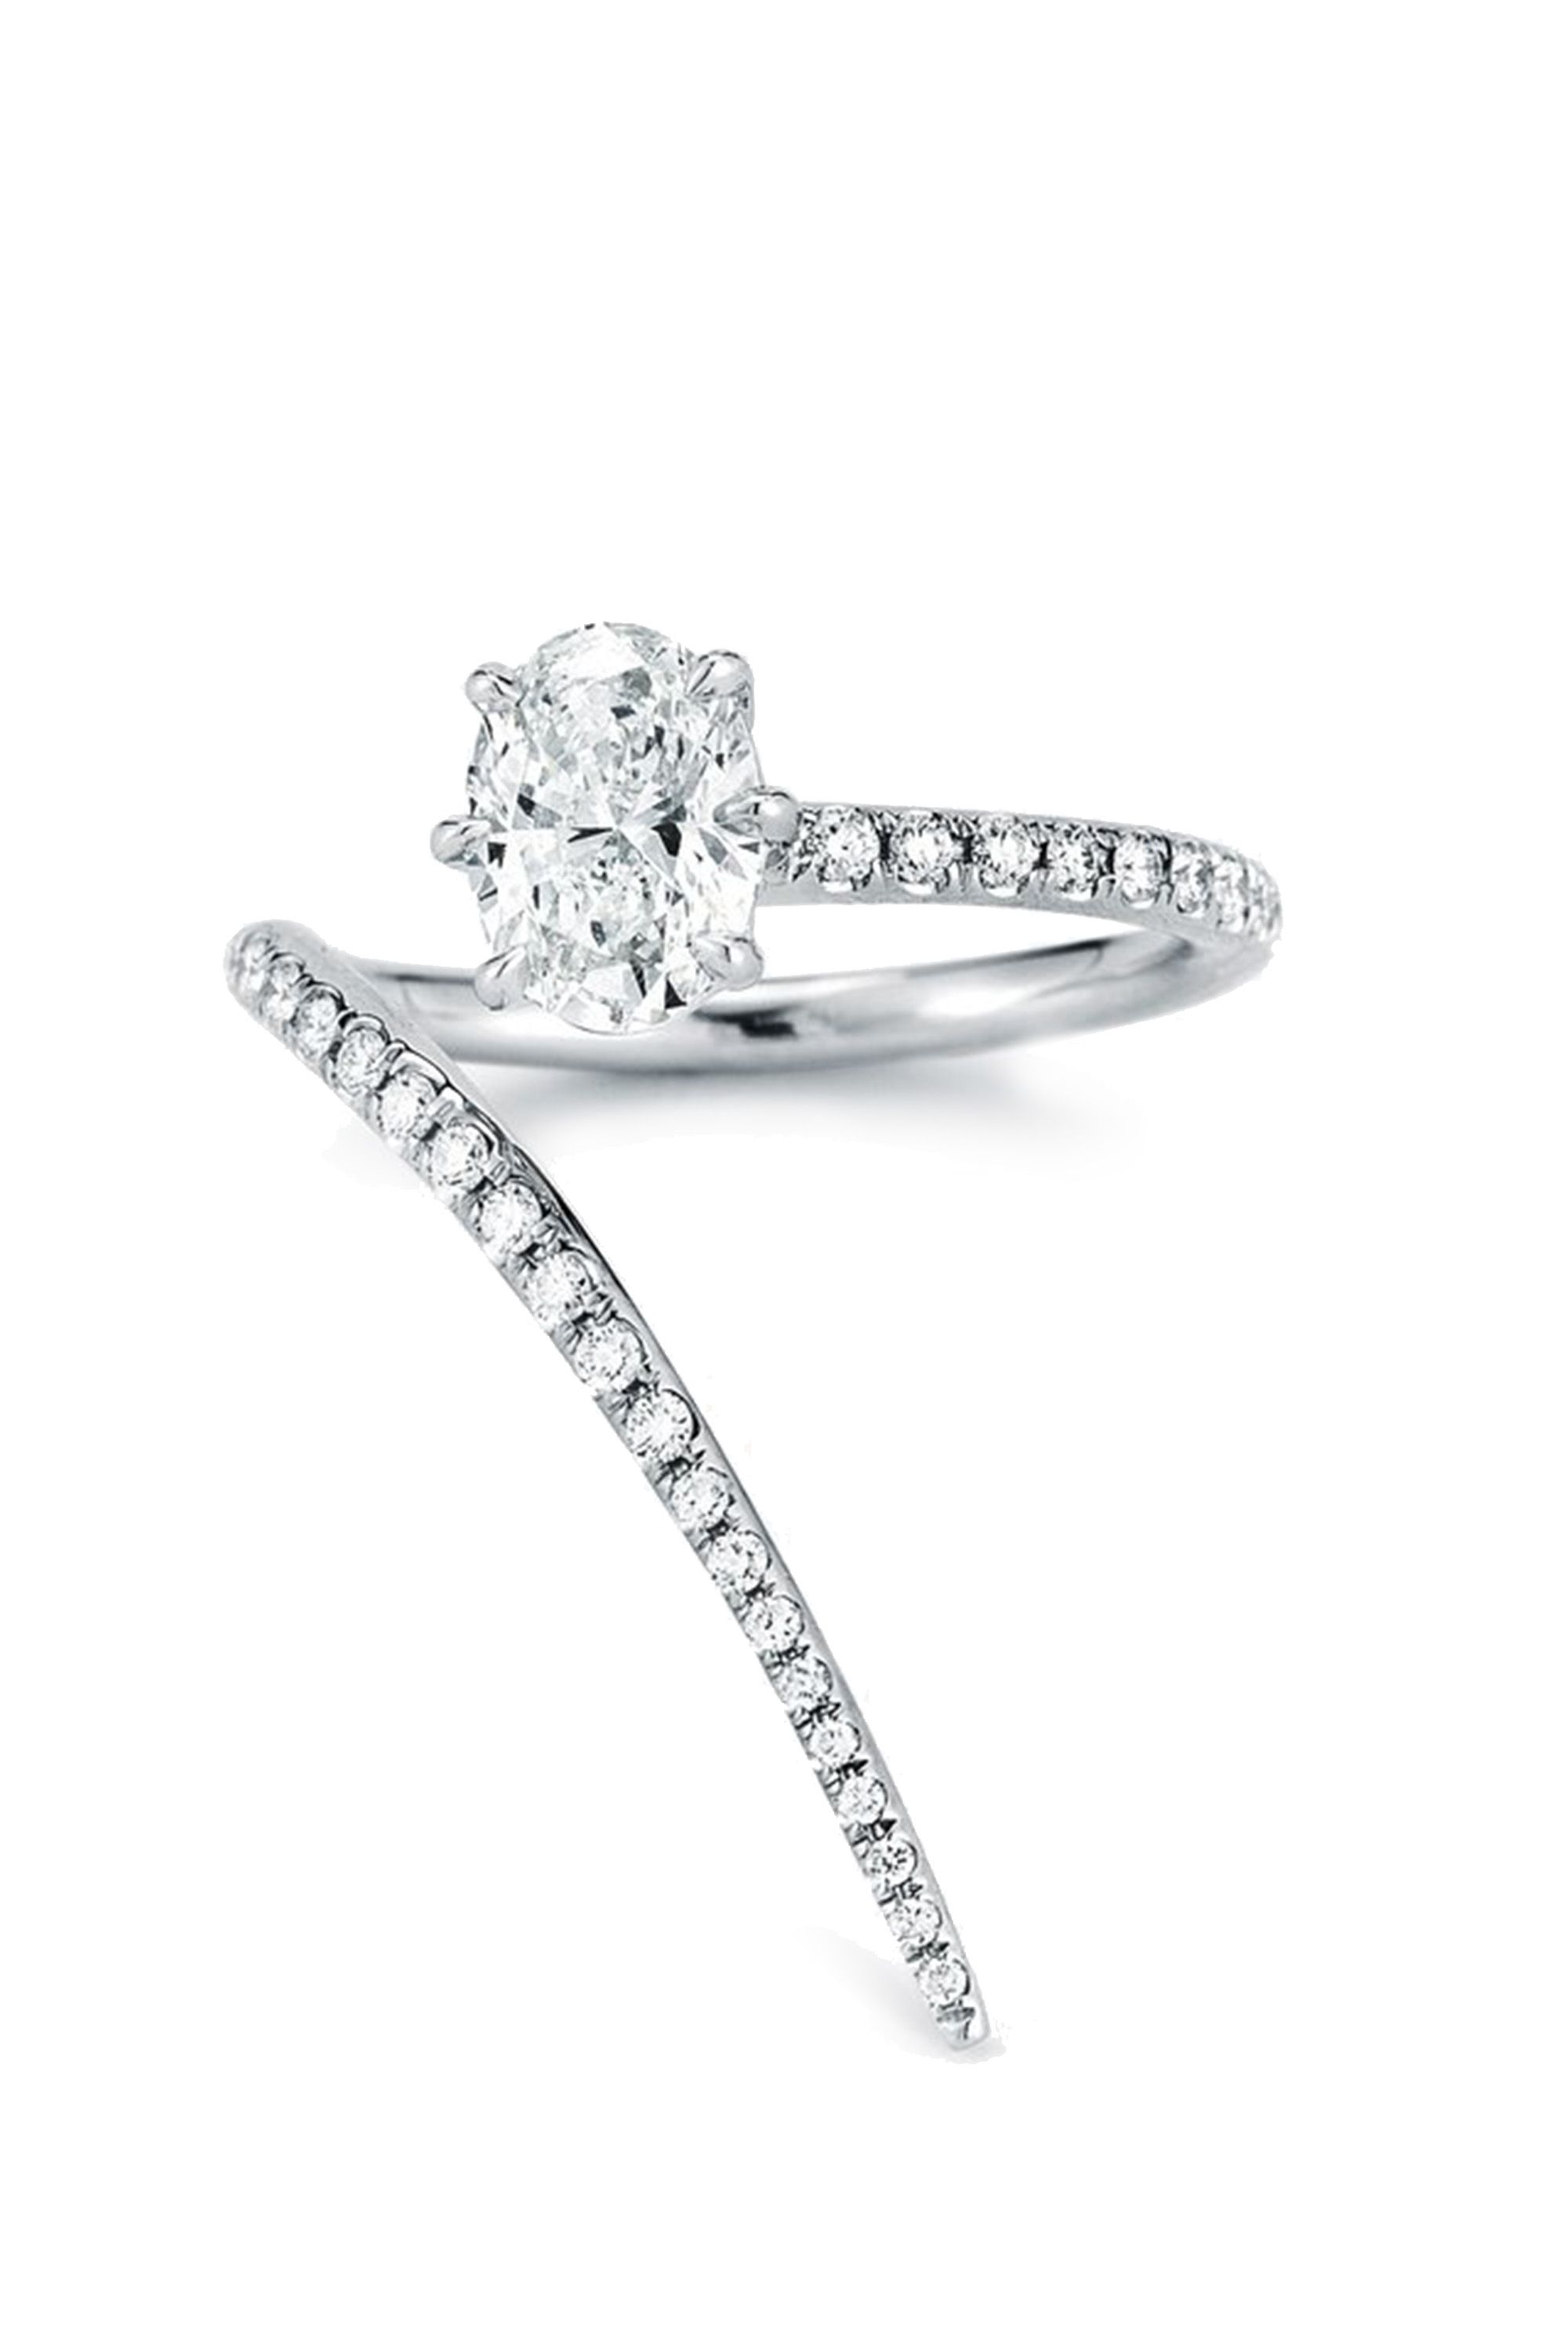 design gallery attachment photos engagement wedding ring photo rings of diamond stunning with special viewing